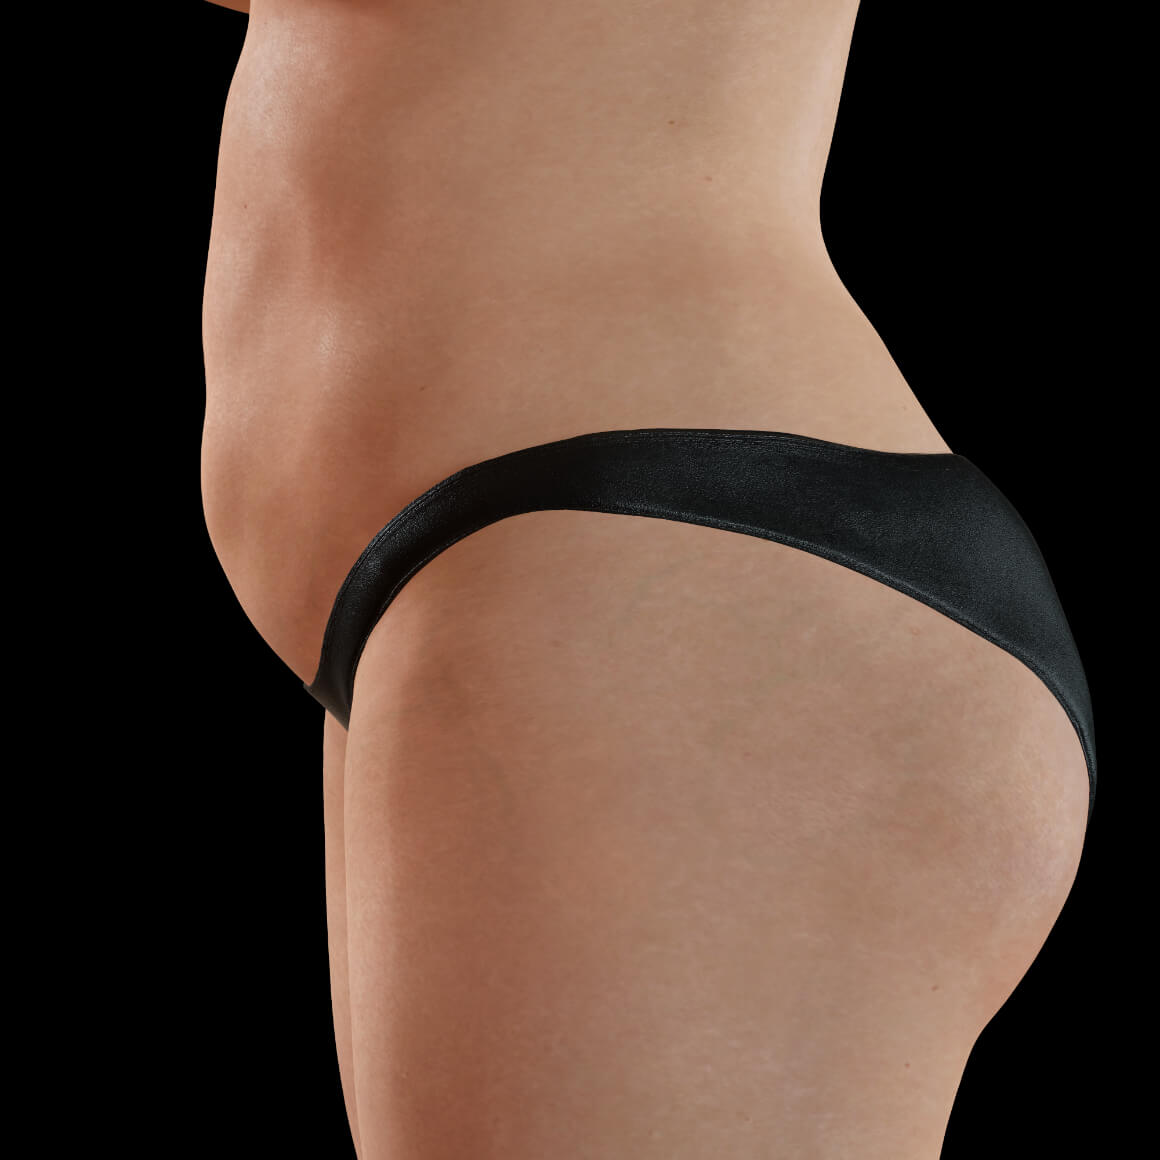 A female patient from Clinique Chloé positioned sideways with localized fat deposits on the body